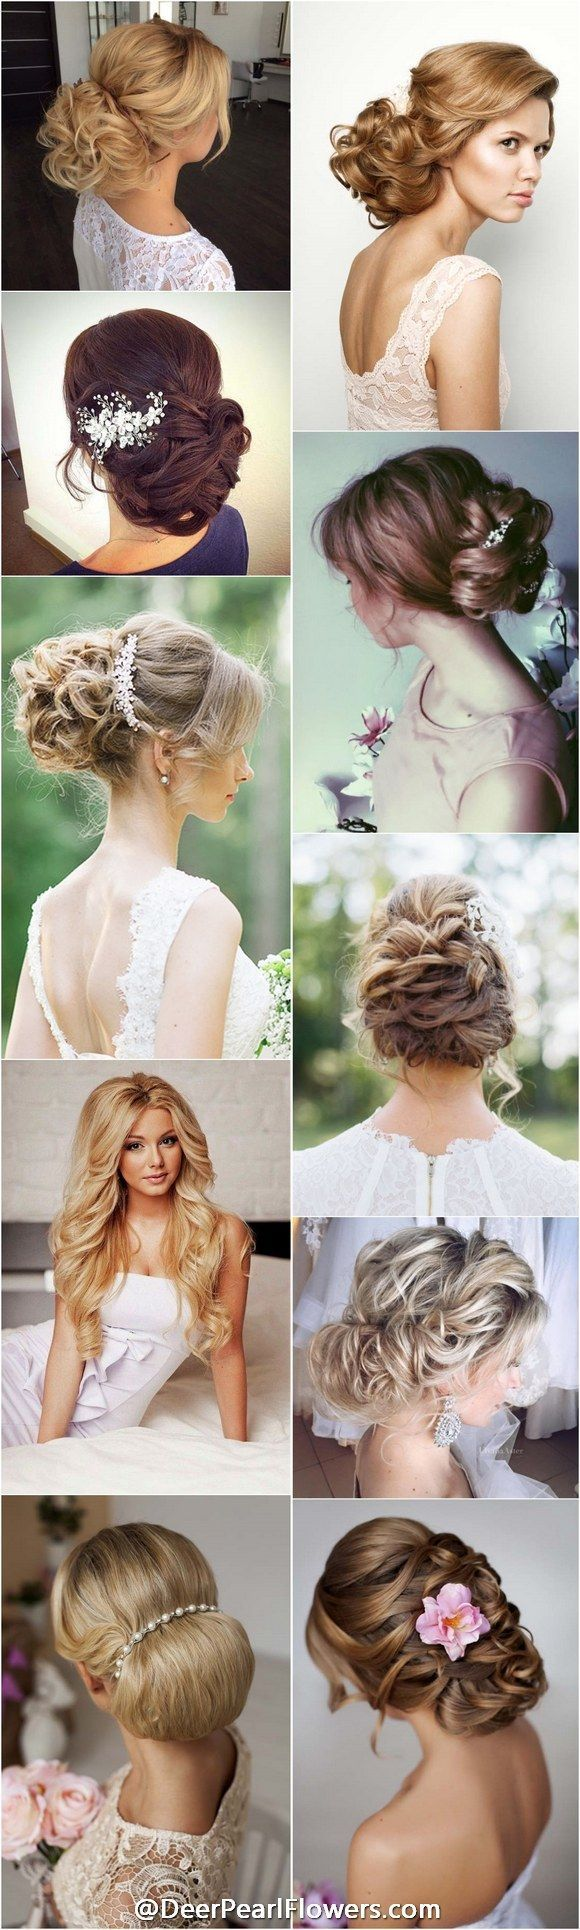 wedding hairstyles for long hair haircut styles easy